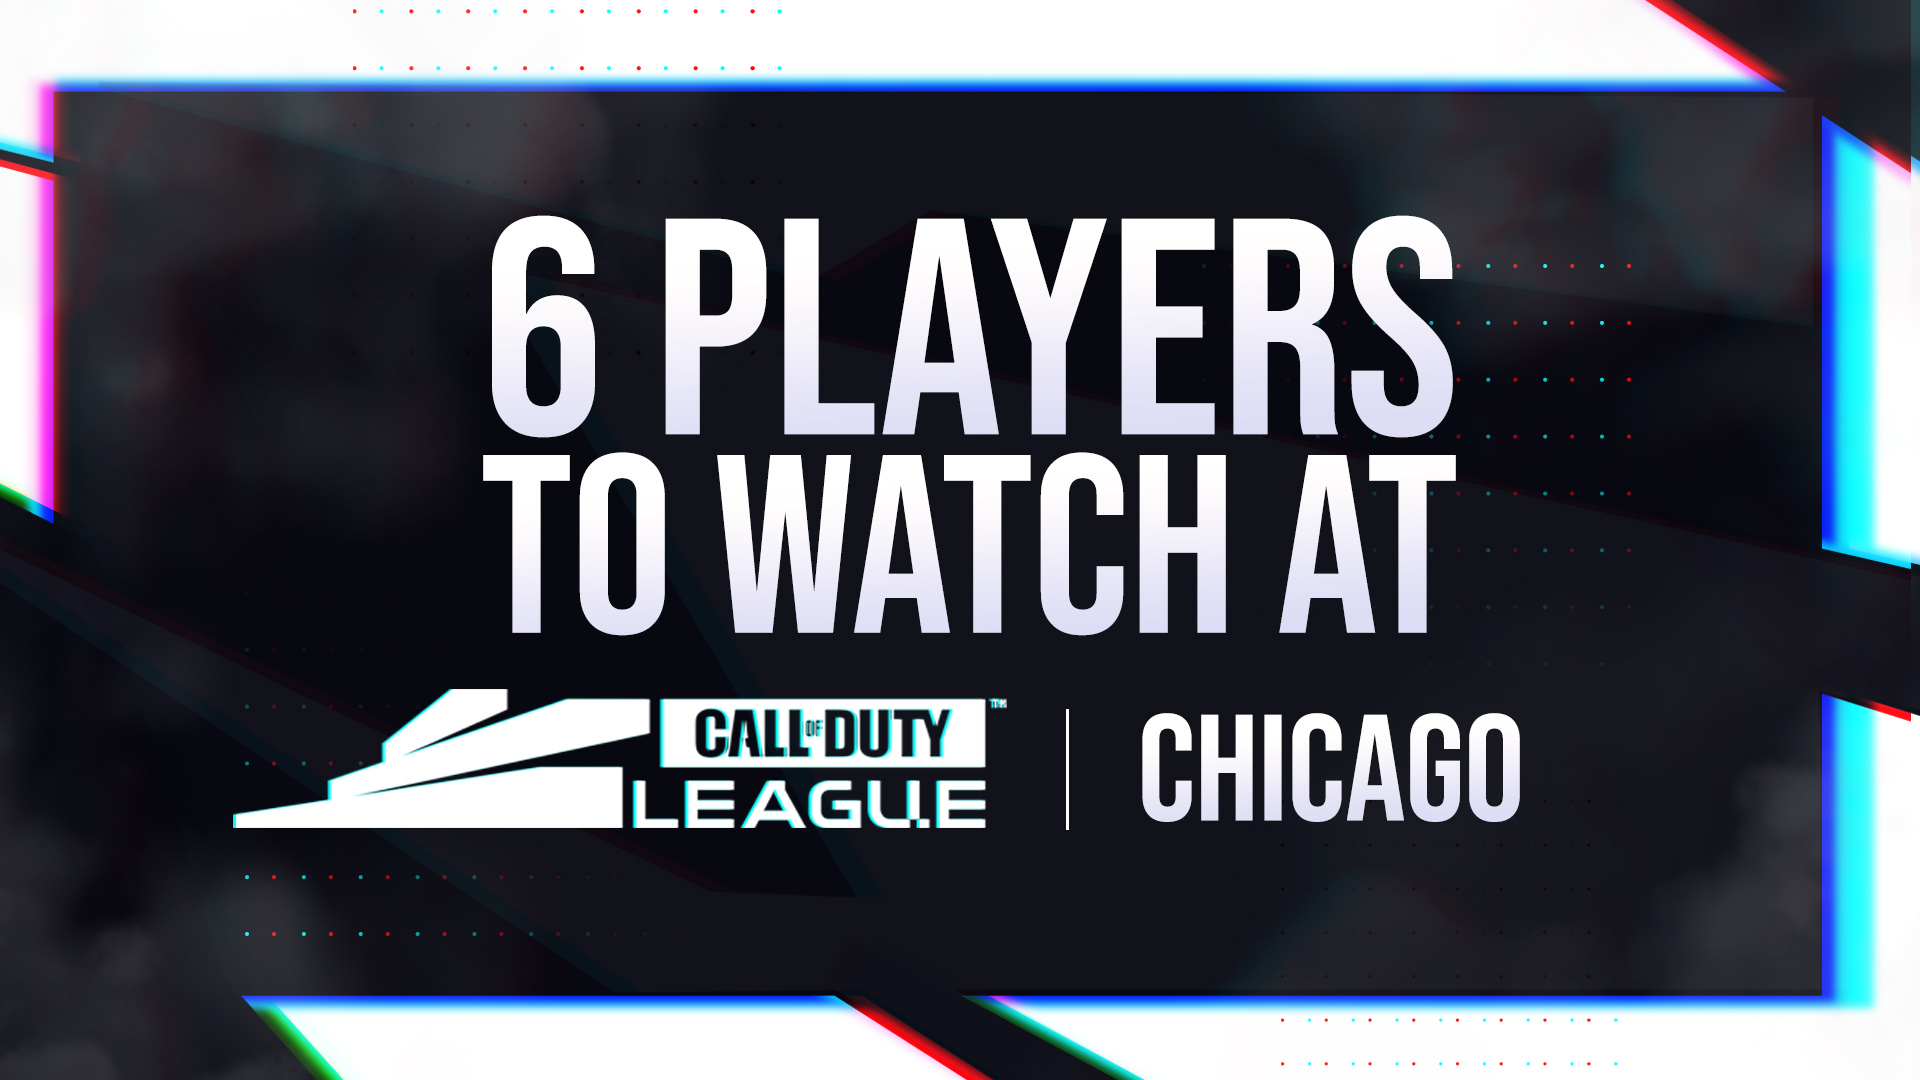 6 players to watch during CDL Chicago.